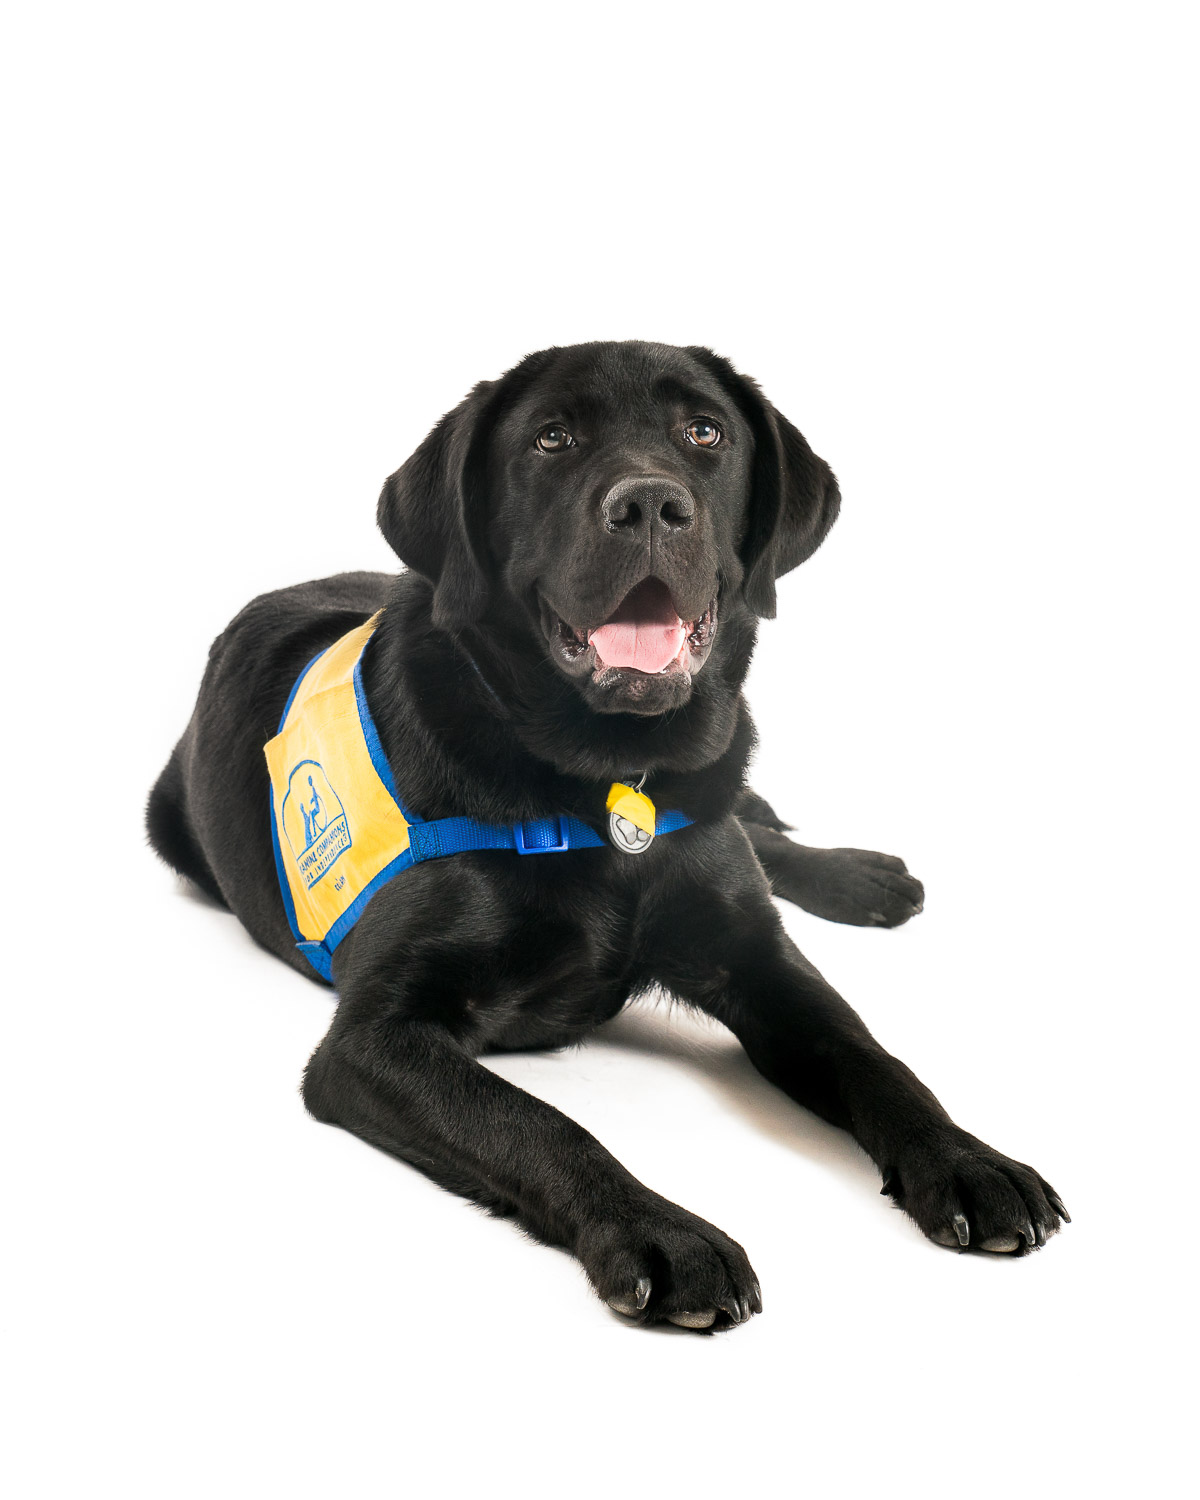 CCI Canine Companions for Independence - 013.jpg